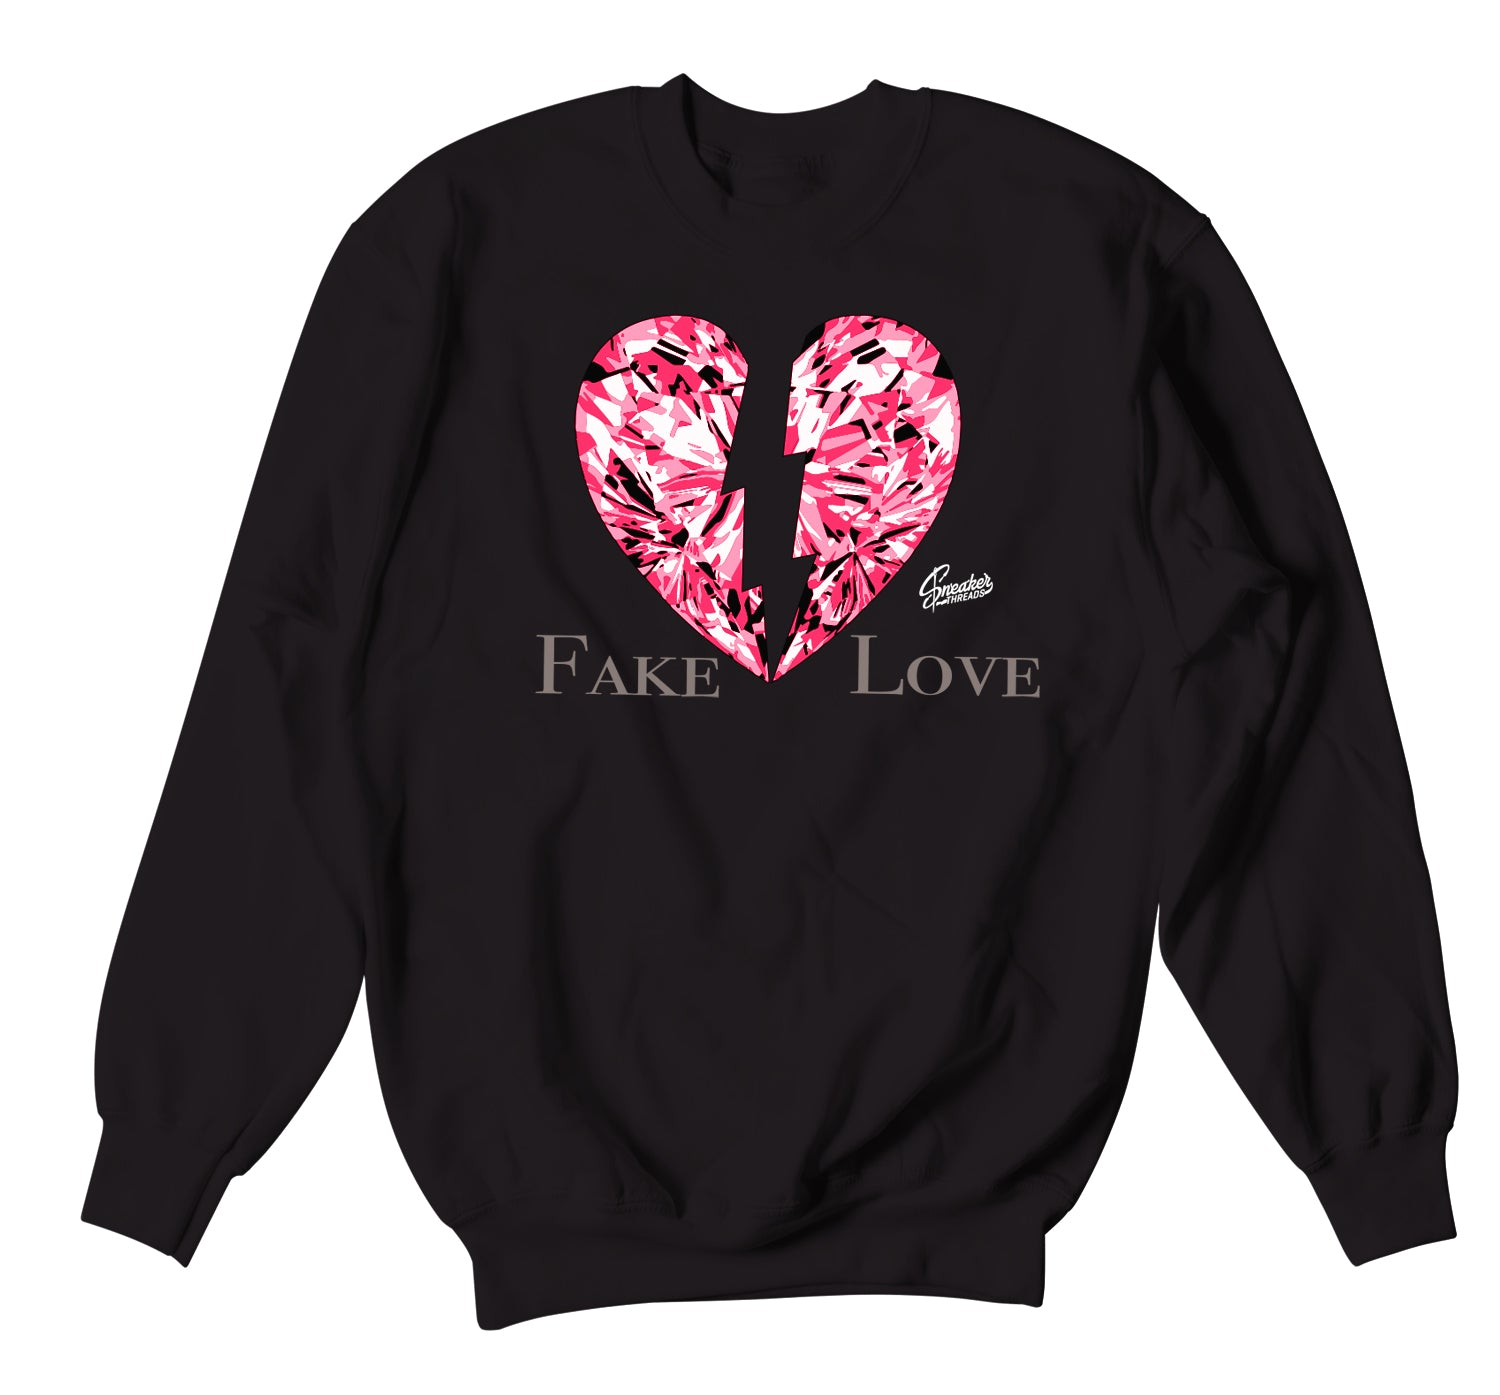 Jordan 4 Taupe Haze Sweater - Fake Love - Black